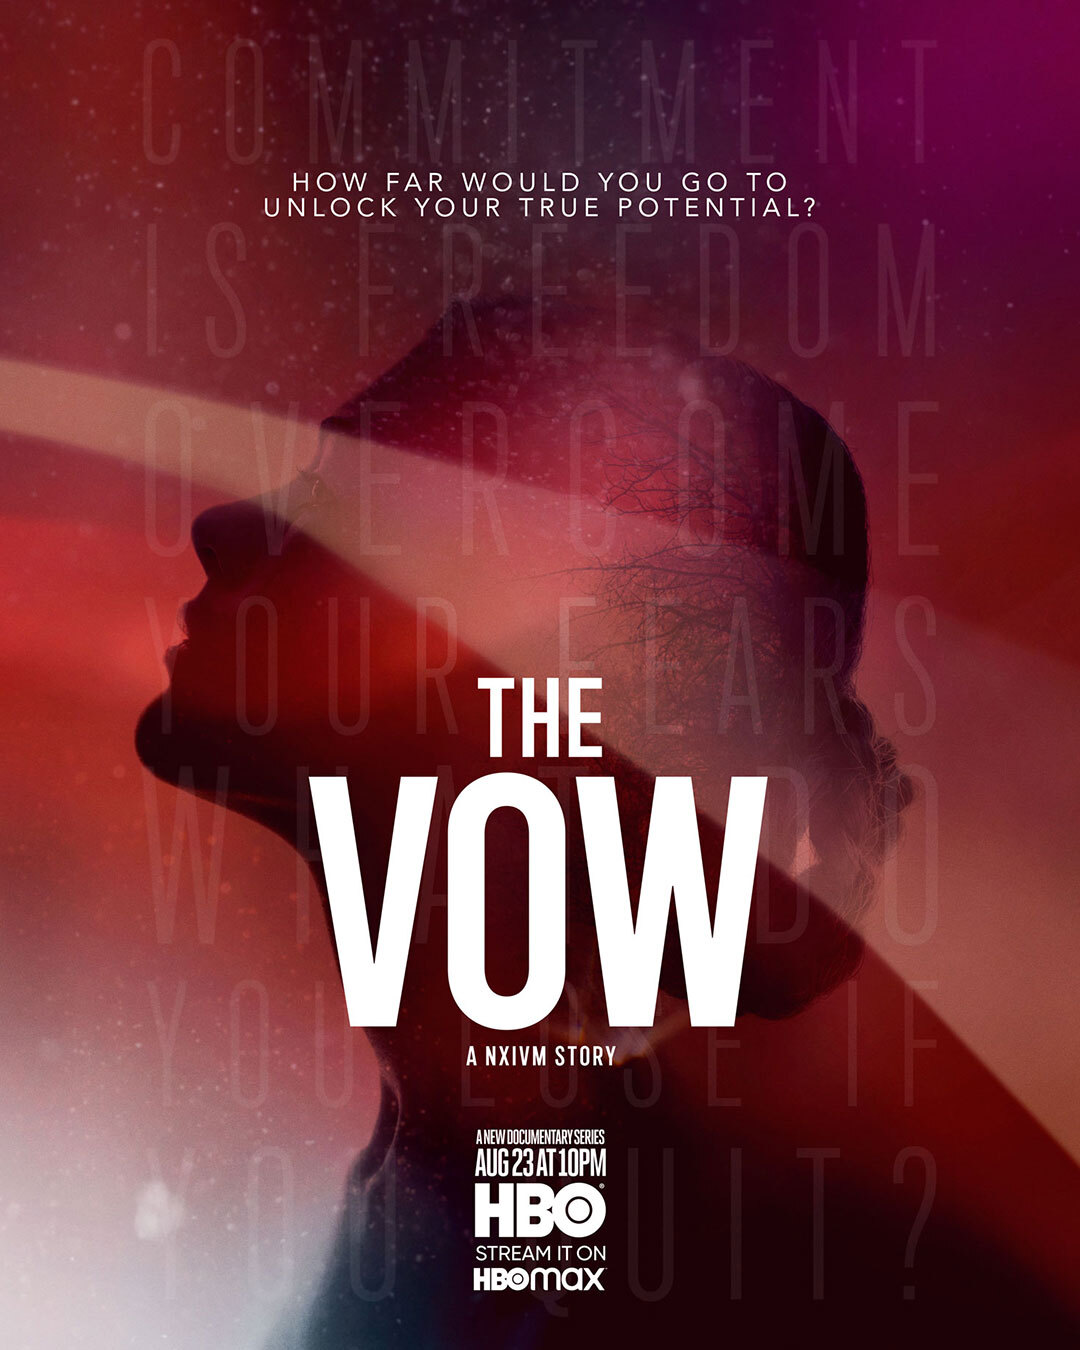 https://www.hbo.com/the-vow